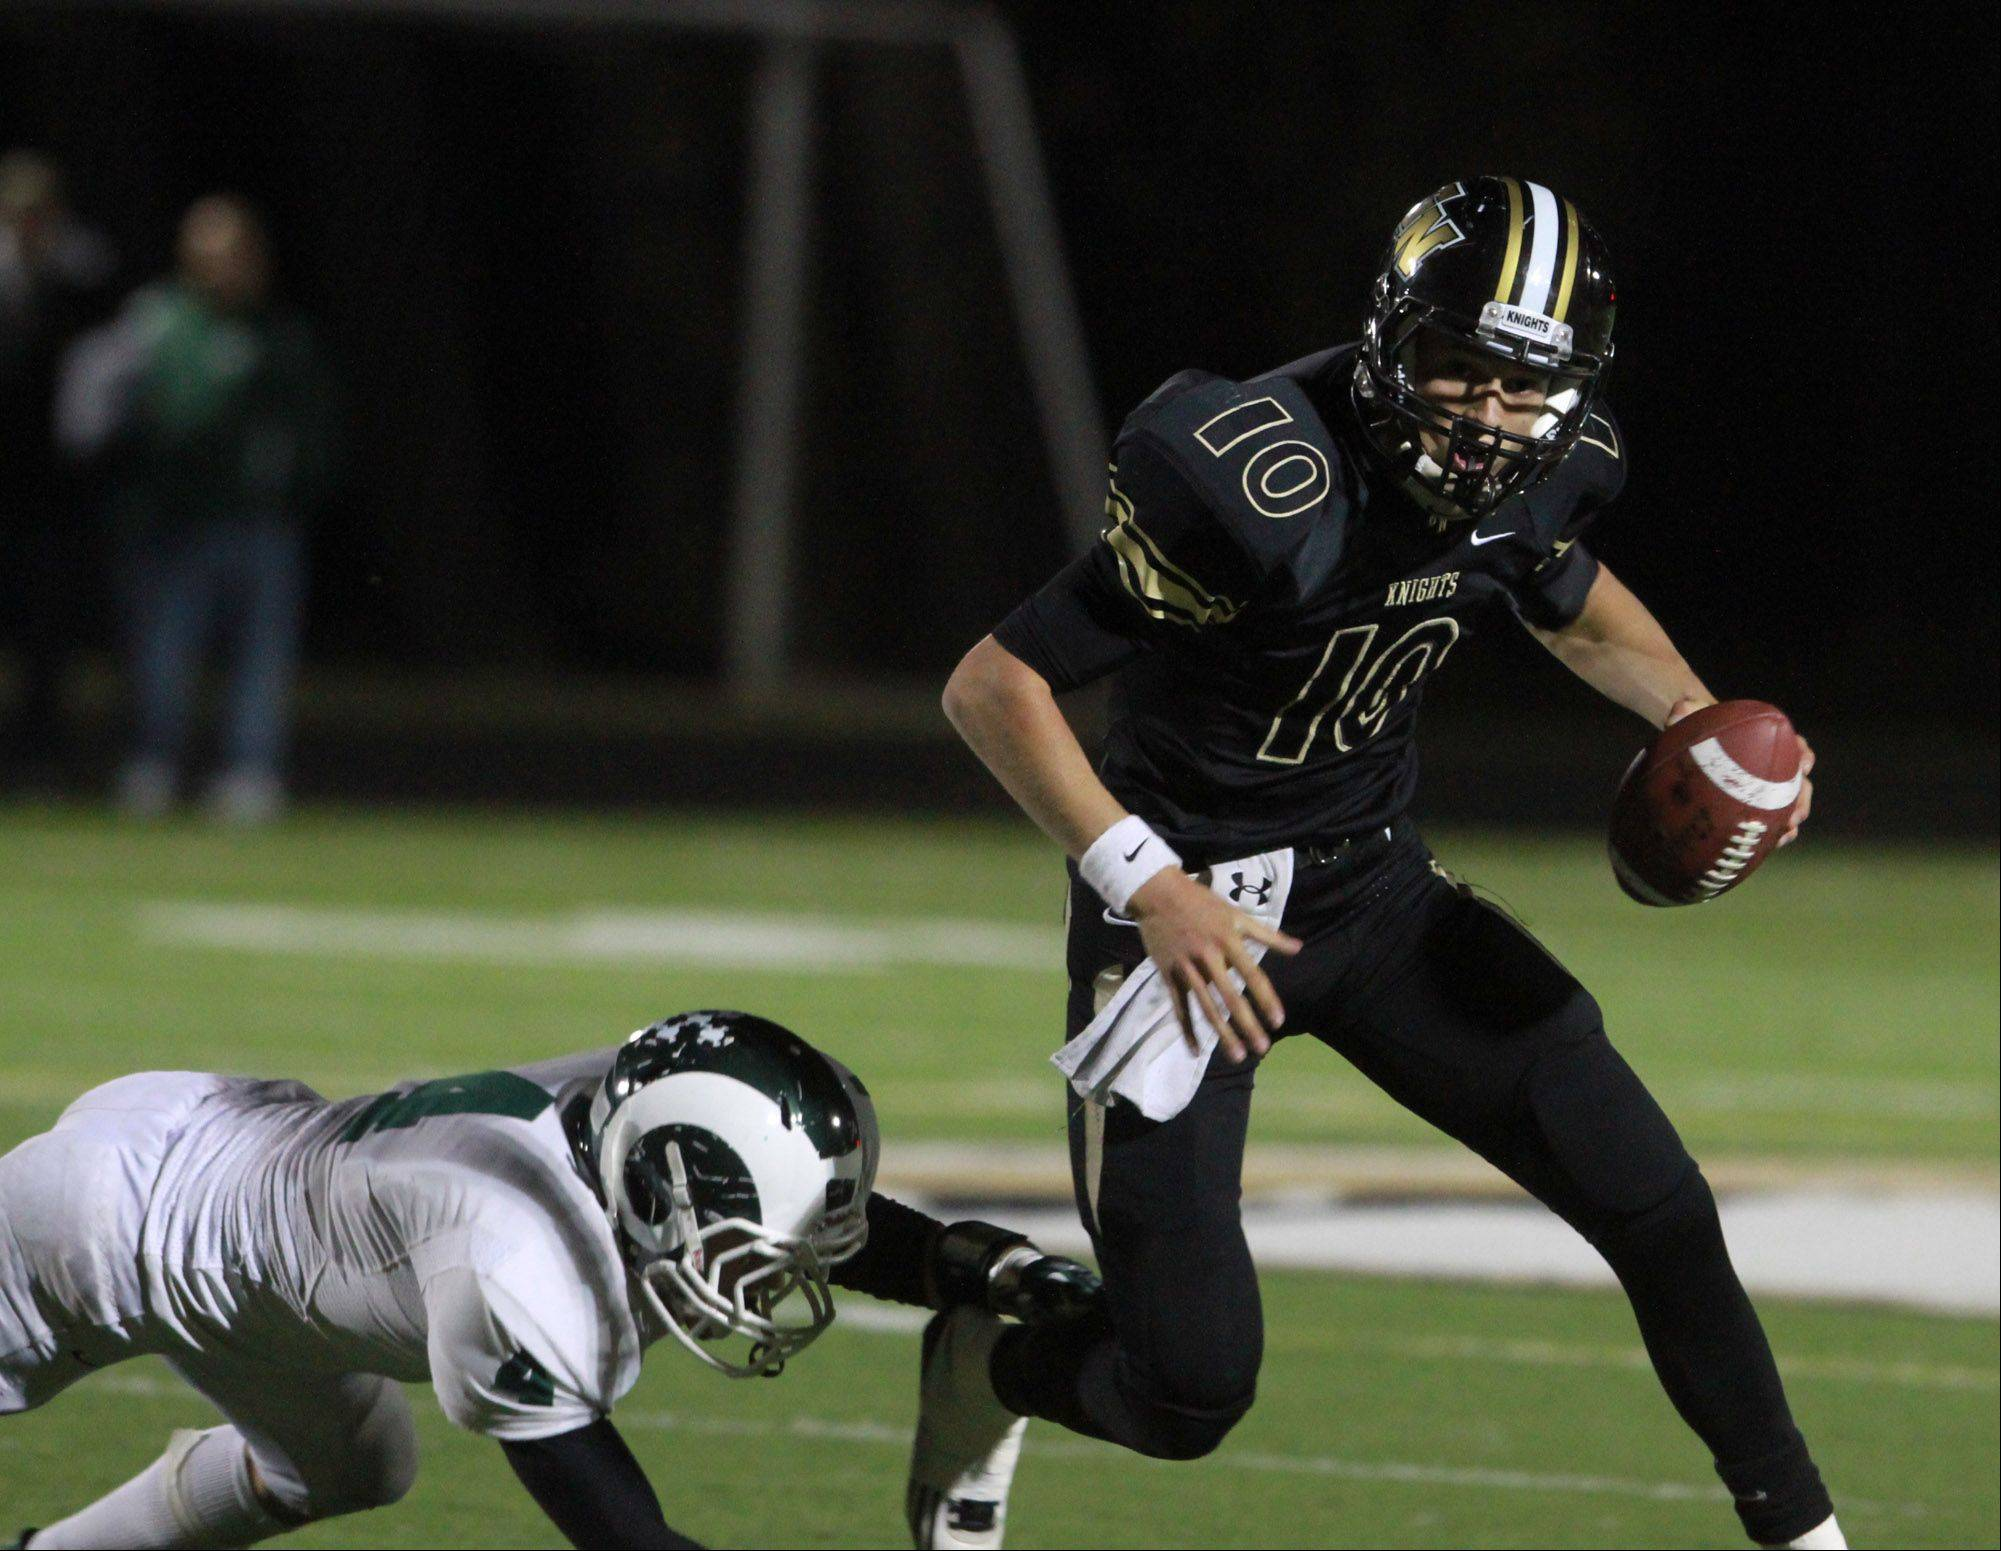 Week -8- Photos from the Grayslake Central at Grayslake North football game on Friday, Oct. 12.